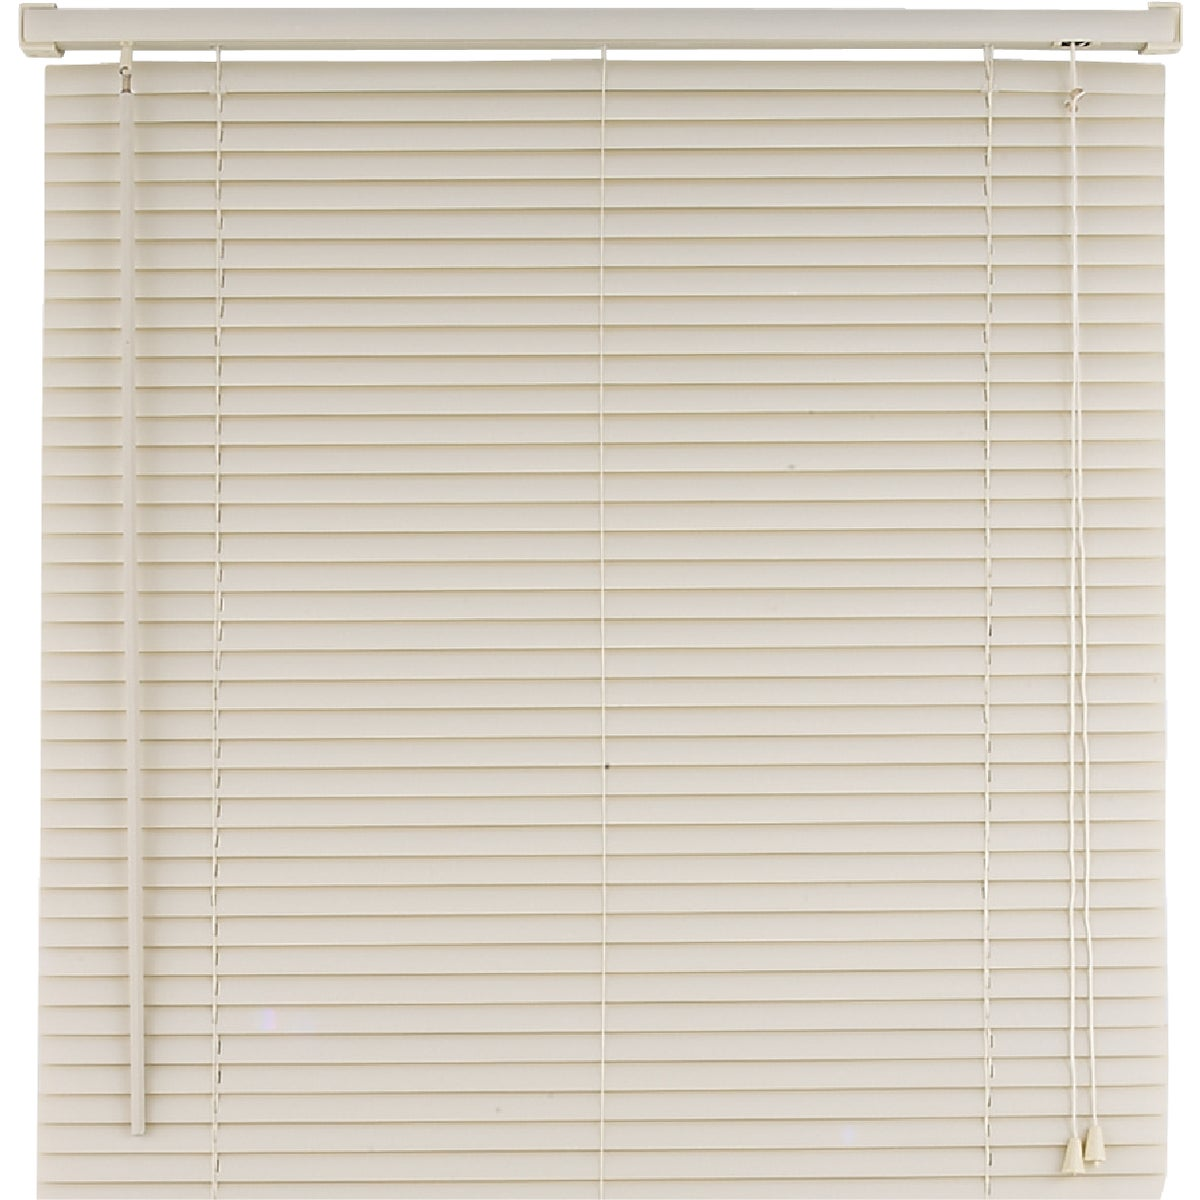 32X64 ALABASTER BLIND - 628020 by Lotus Wind Incom